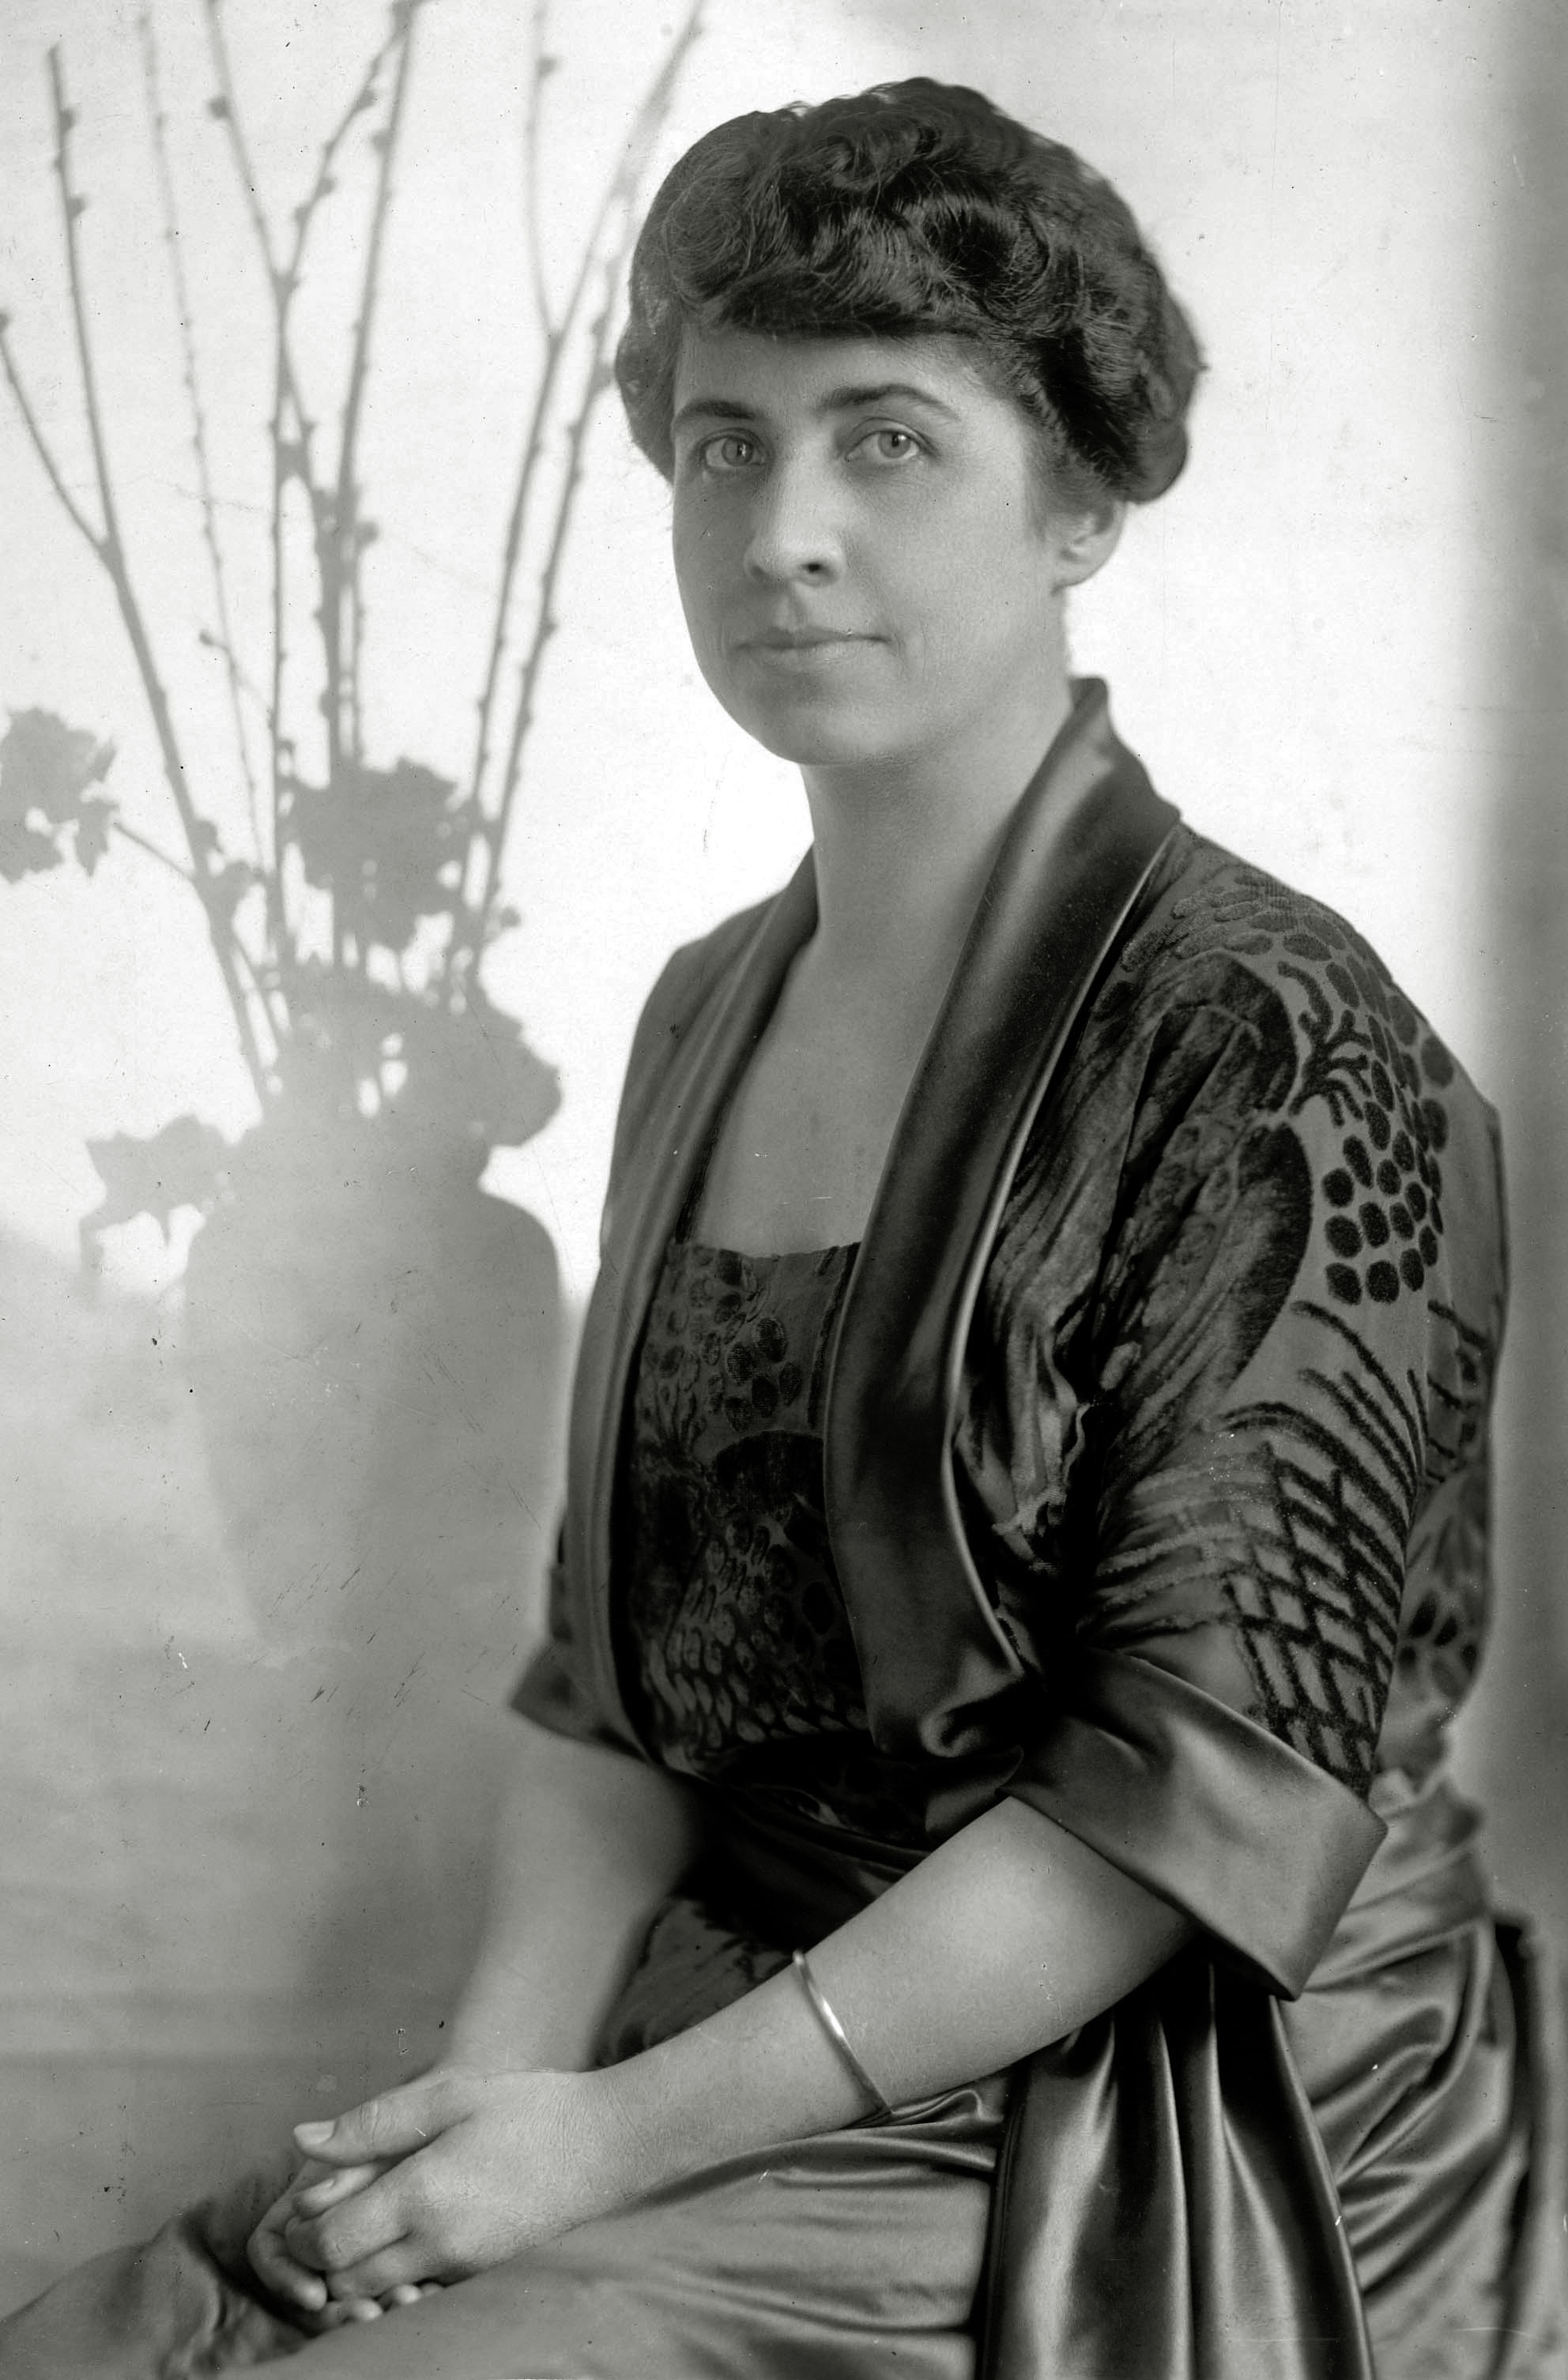 Mrs. Grace Coolidge, the First Lady to Calvin Coolidge, in 1925.